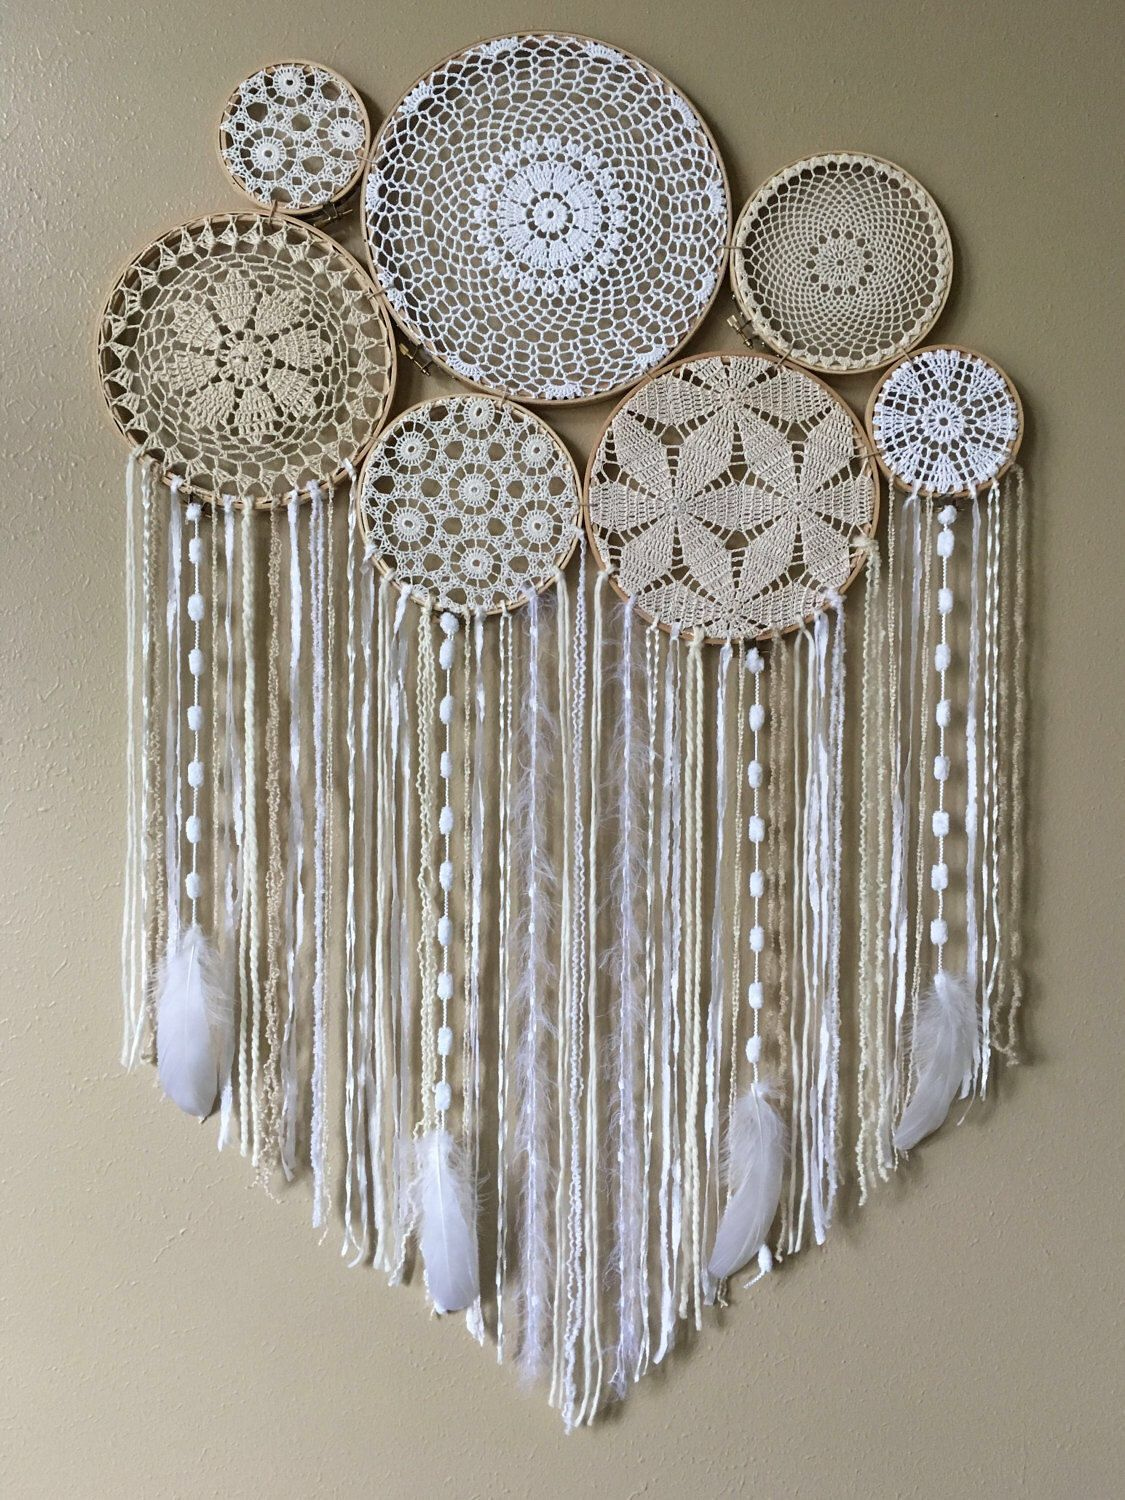 Pin by Driftwood & Dreamers on dreamcatchers  in 2018 ...